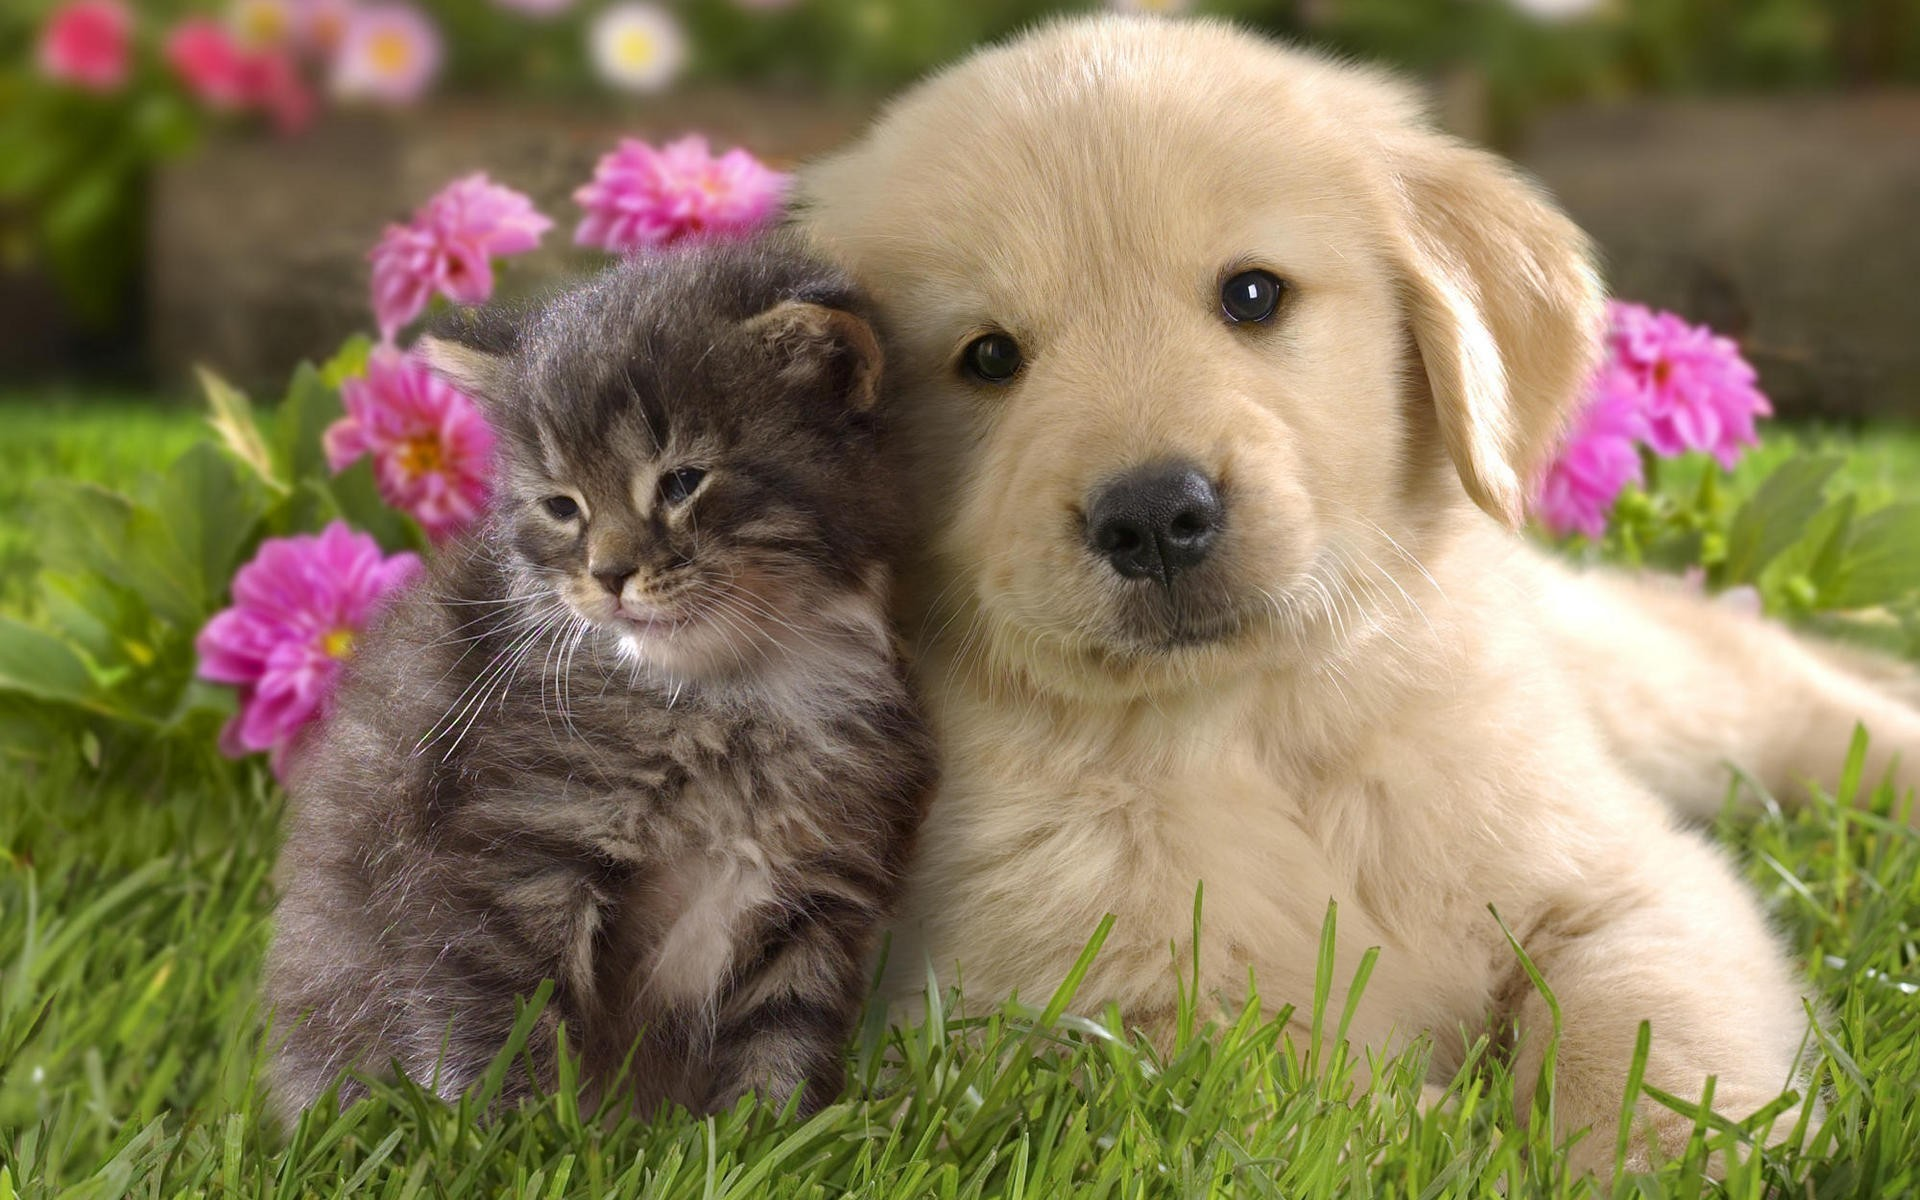 Download Cute Kitten And Puppy Wallpaper Free Wallpapers – PetPictures